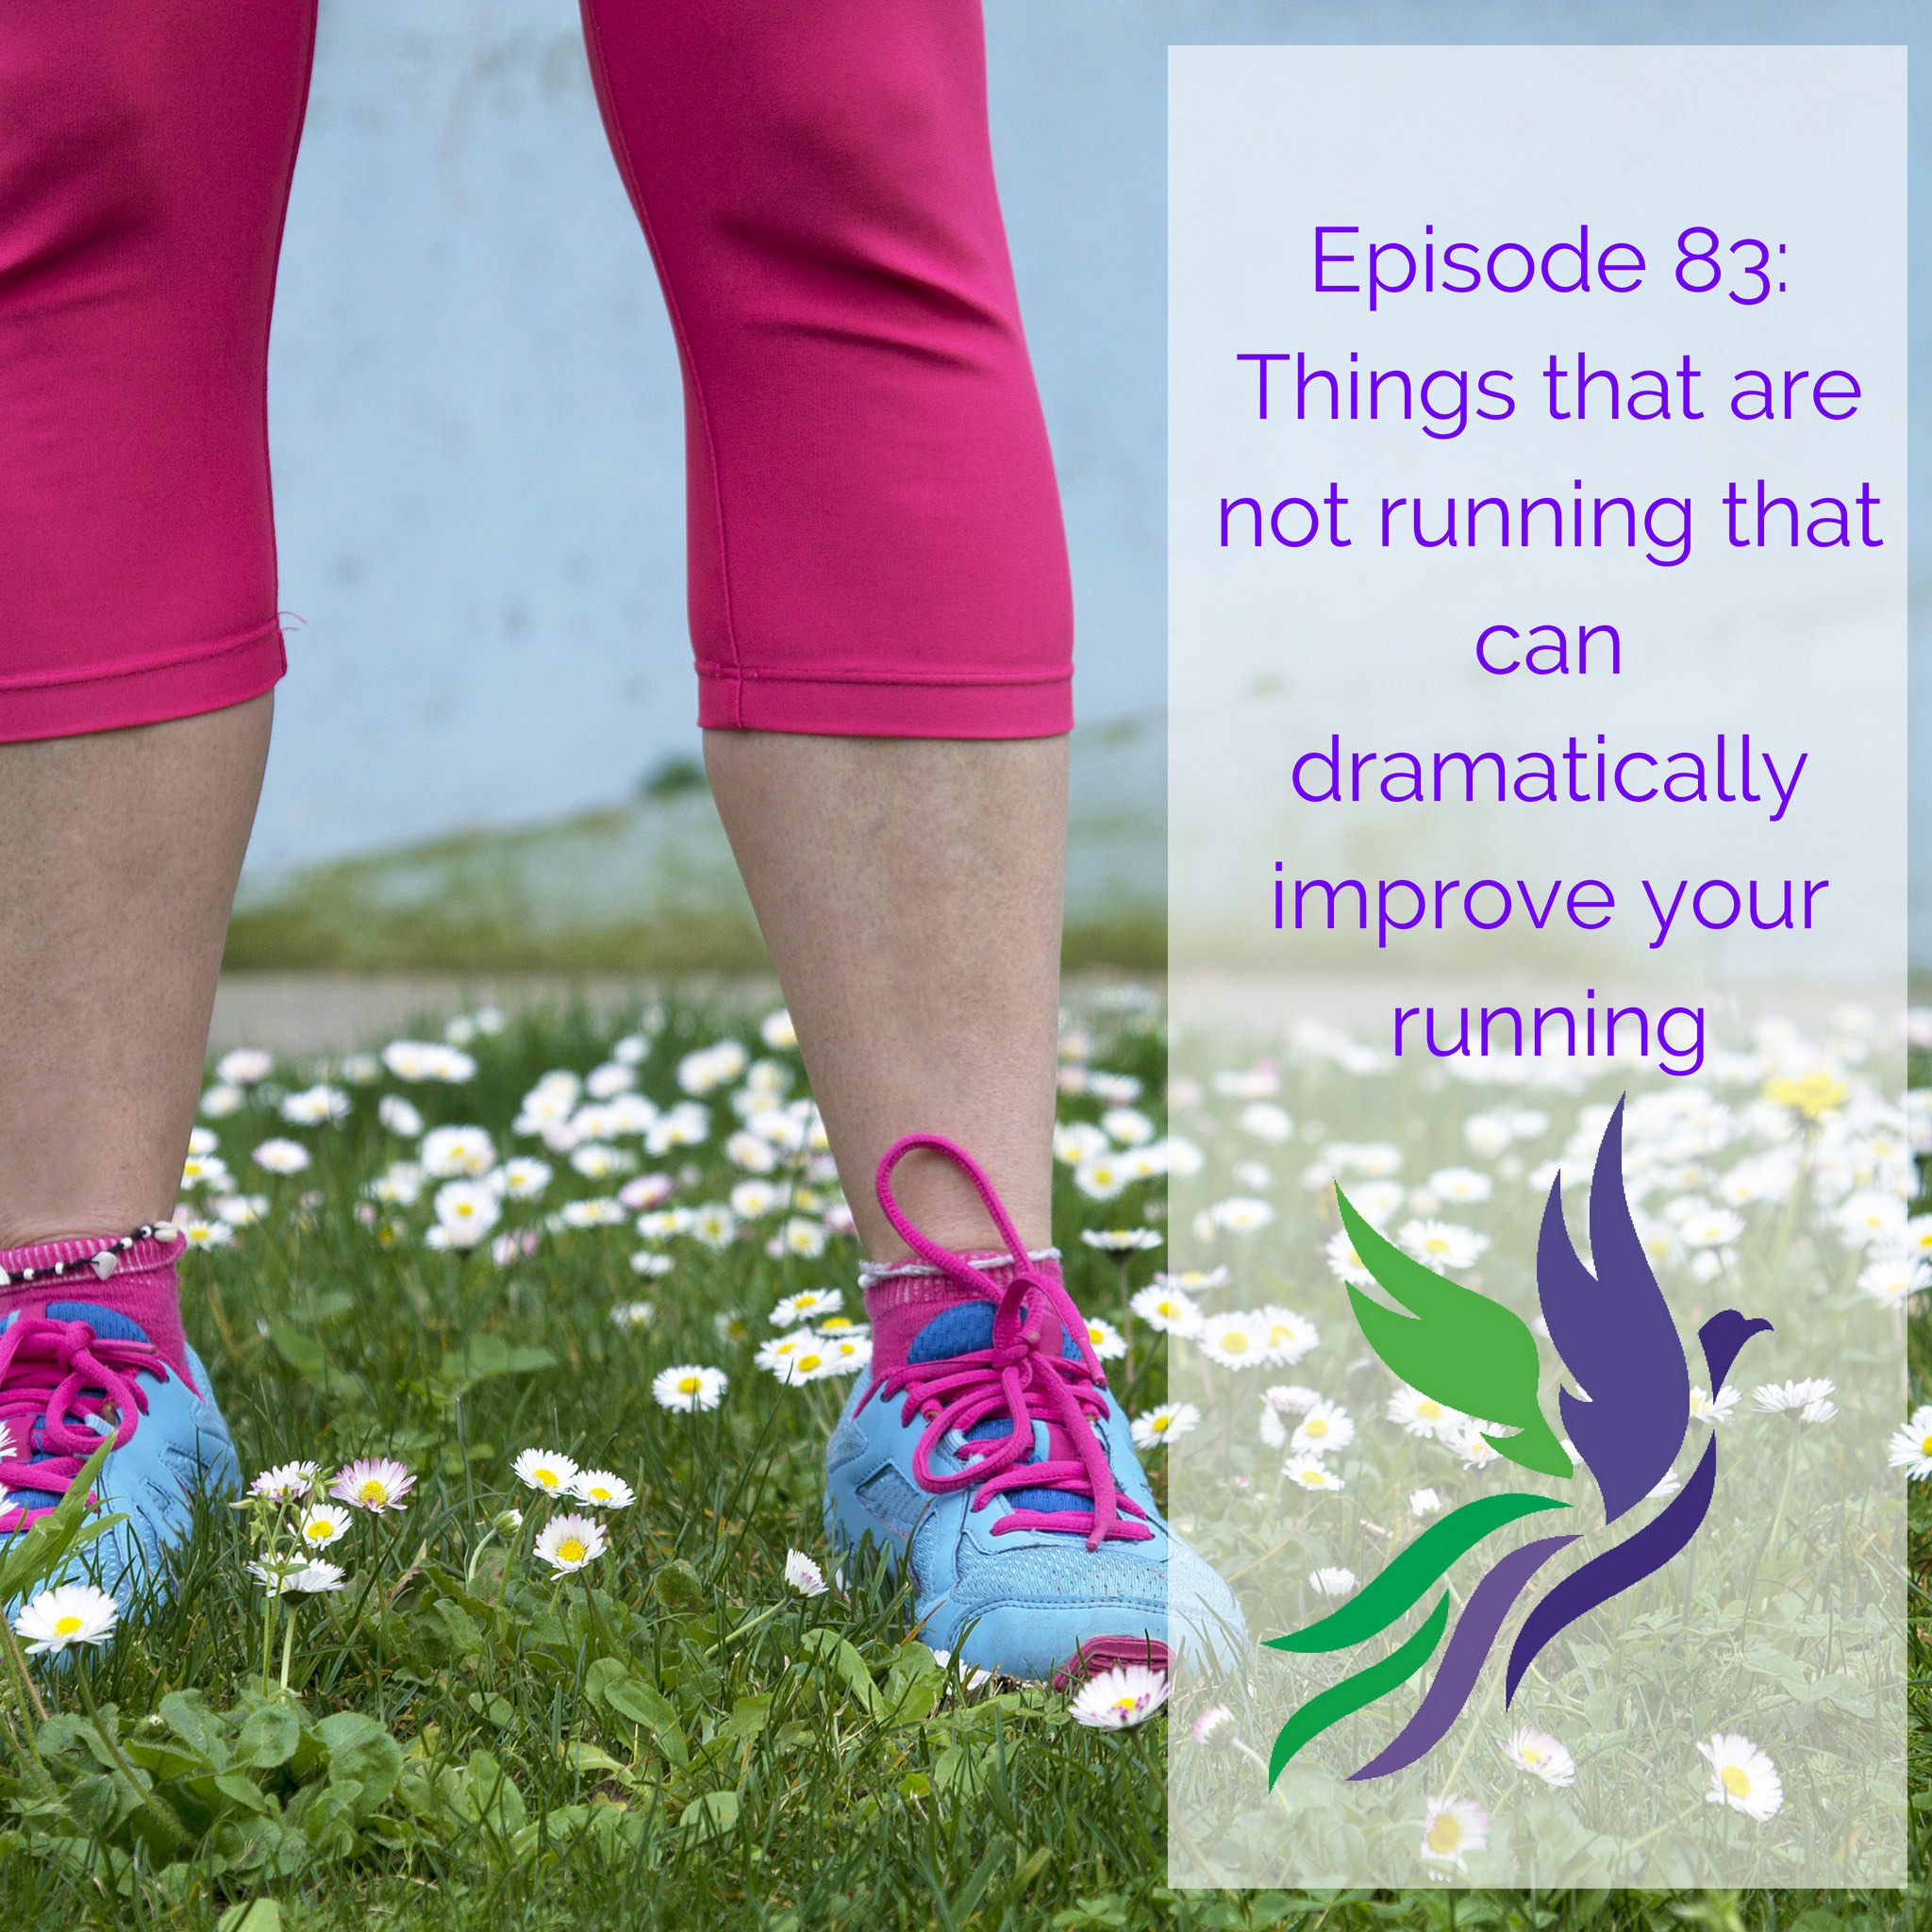 #83 Things that are not running that  can dramatically improve your running